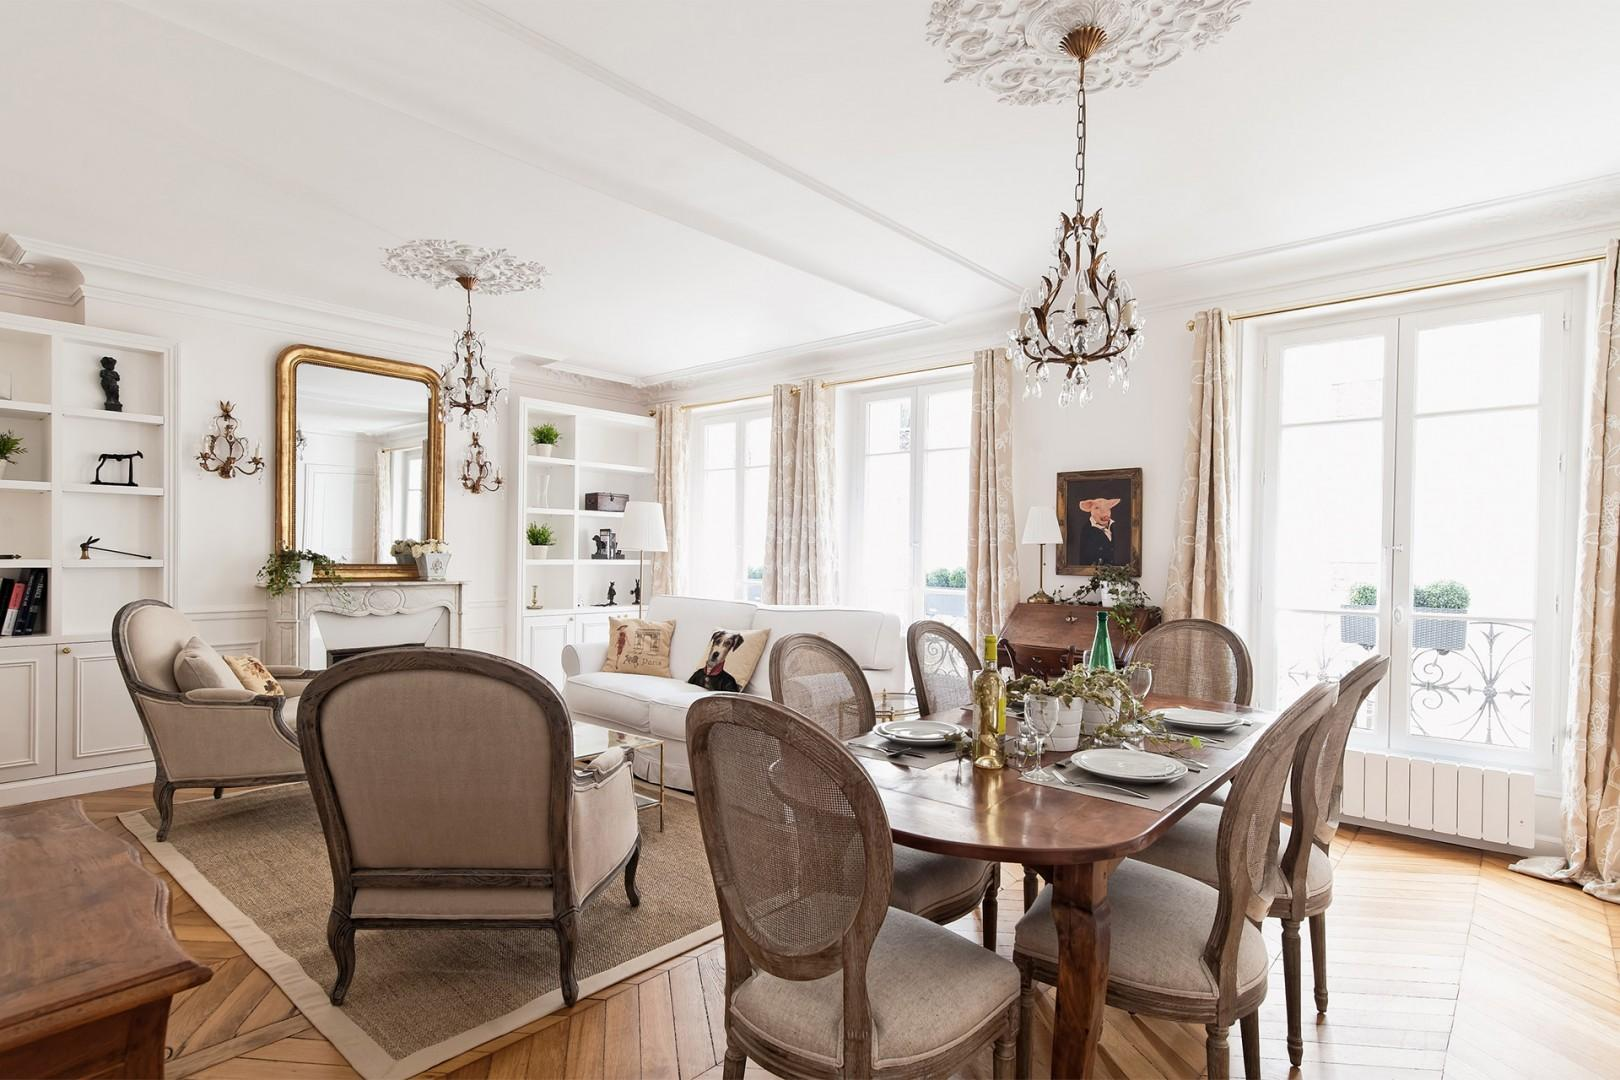 Wooden furnishings and crystal chandeliers adorn the stylish space.